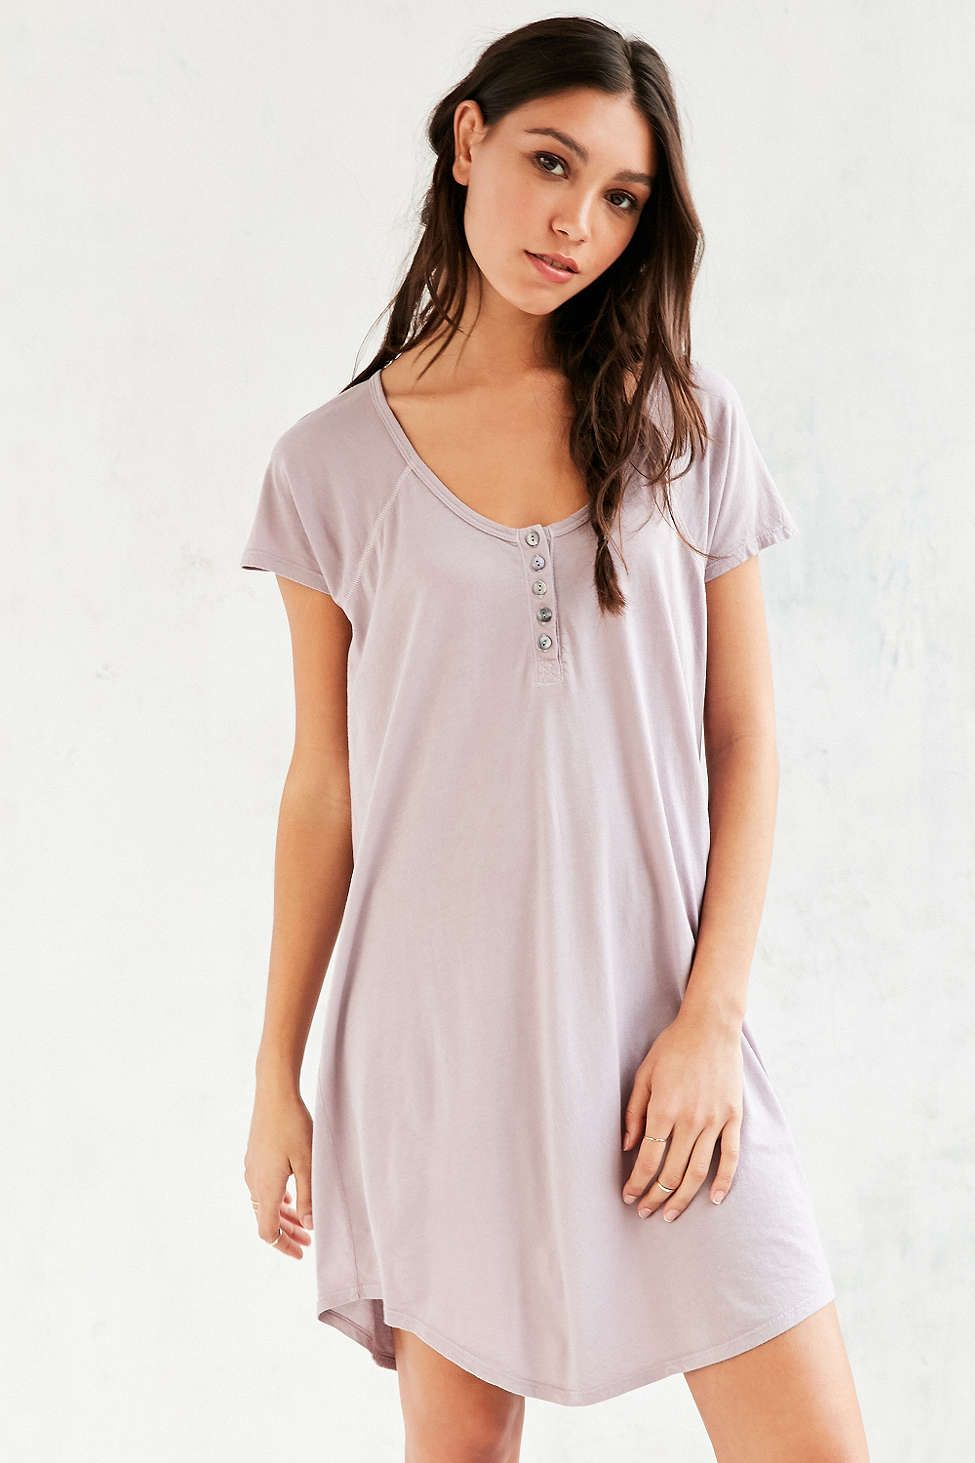 ec1c712be671 Truly Madly Deeply Henley T-Shirt Dress   urban outfitters obsessed ...